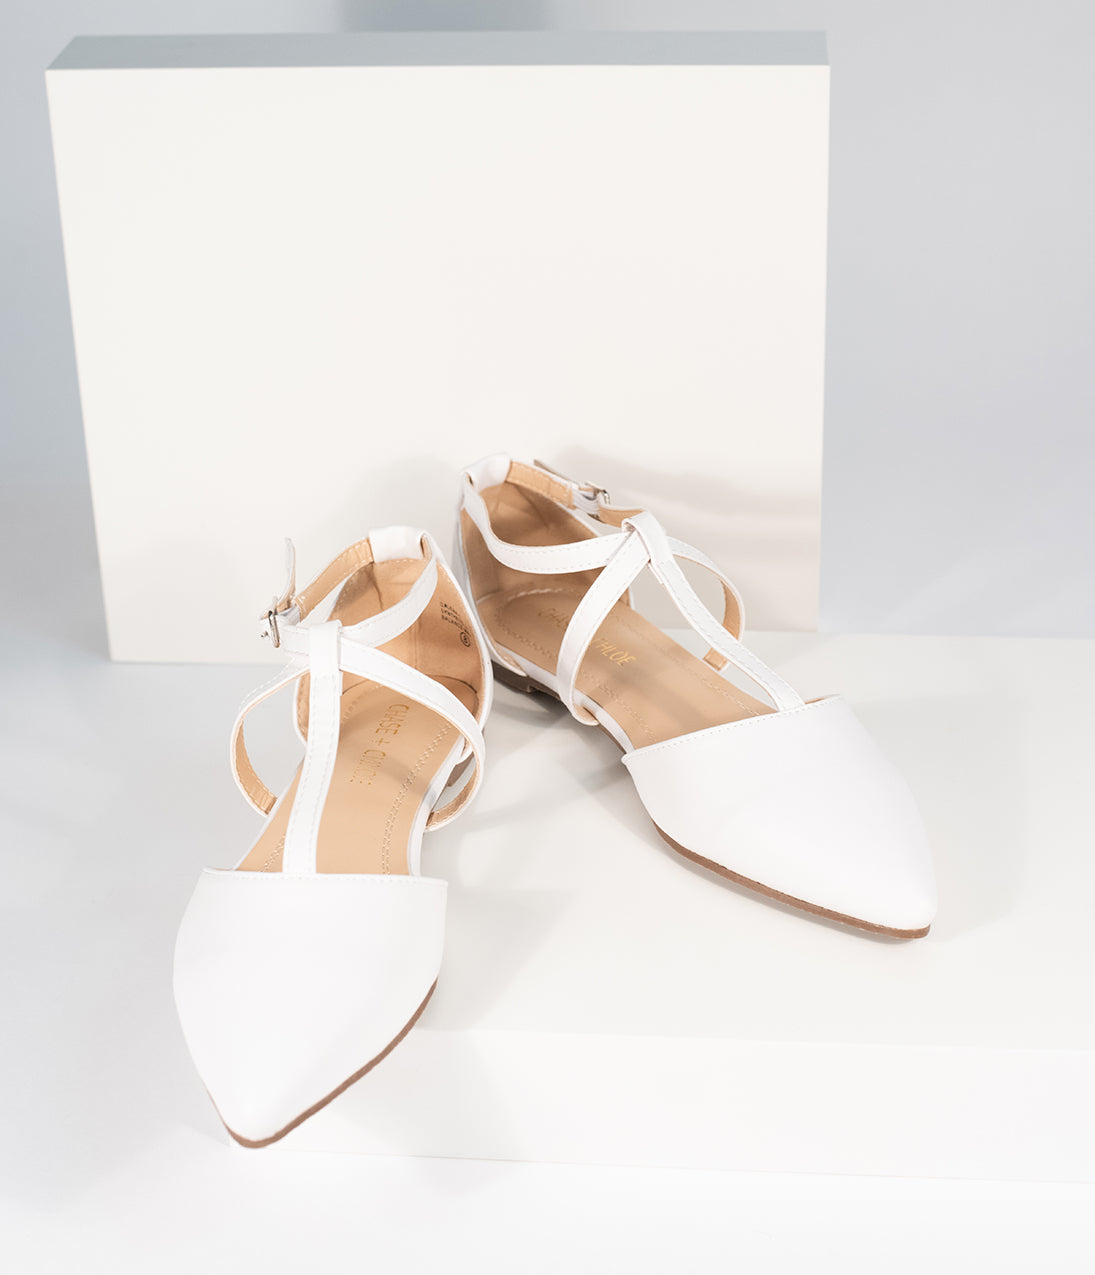 Vintage Wedding Shoes, Flats, Boots, Heels White Leatherette Pointed Toe Dalena T-Strap Flat Sandals $32.00 AT vintagedancer.com